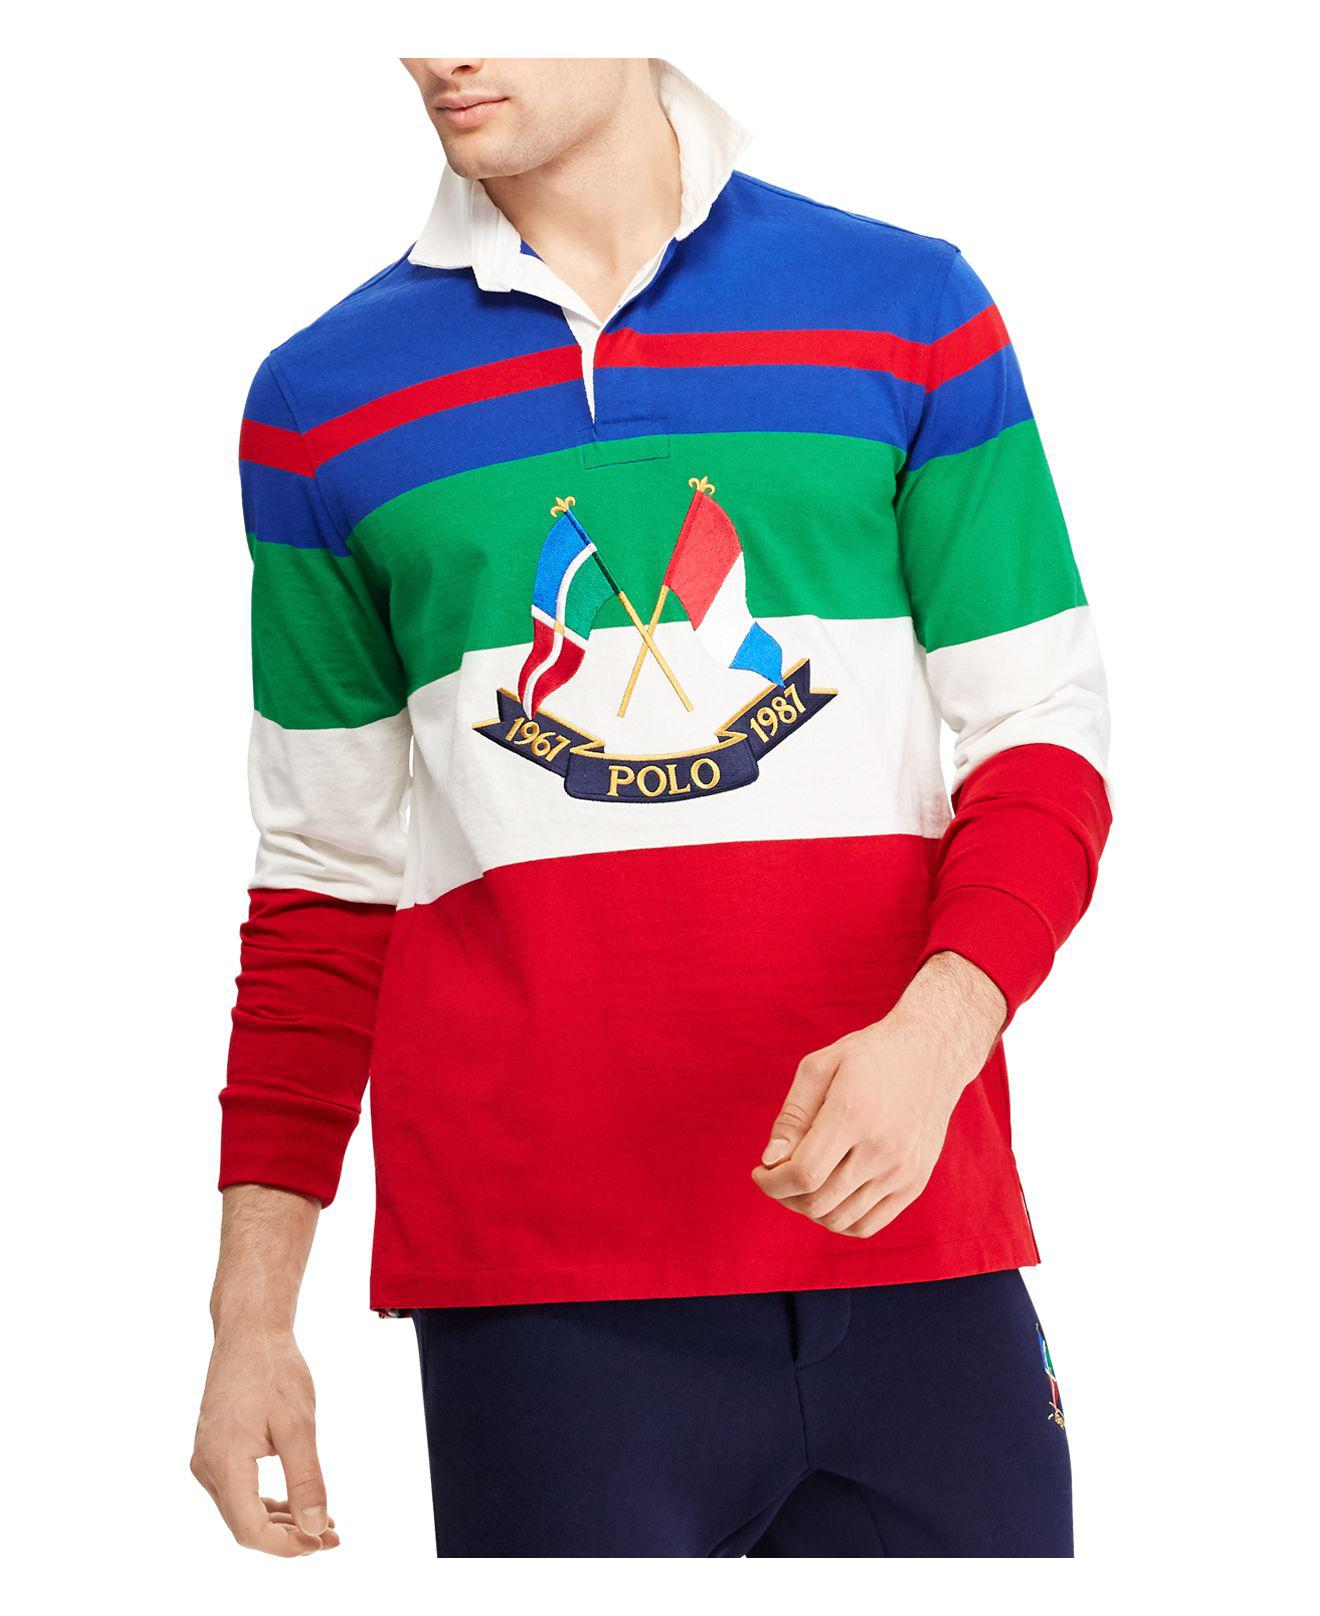 ba4a6479c32e Lyst - Polo Ralph Lauren Cp-93 Classic Fit Graphic Rugby Shirt in ...